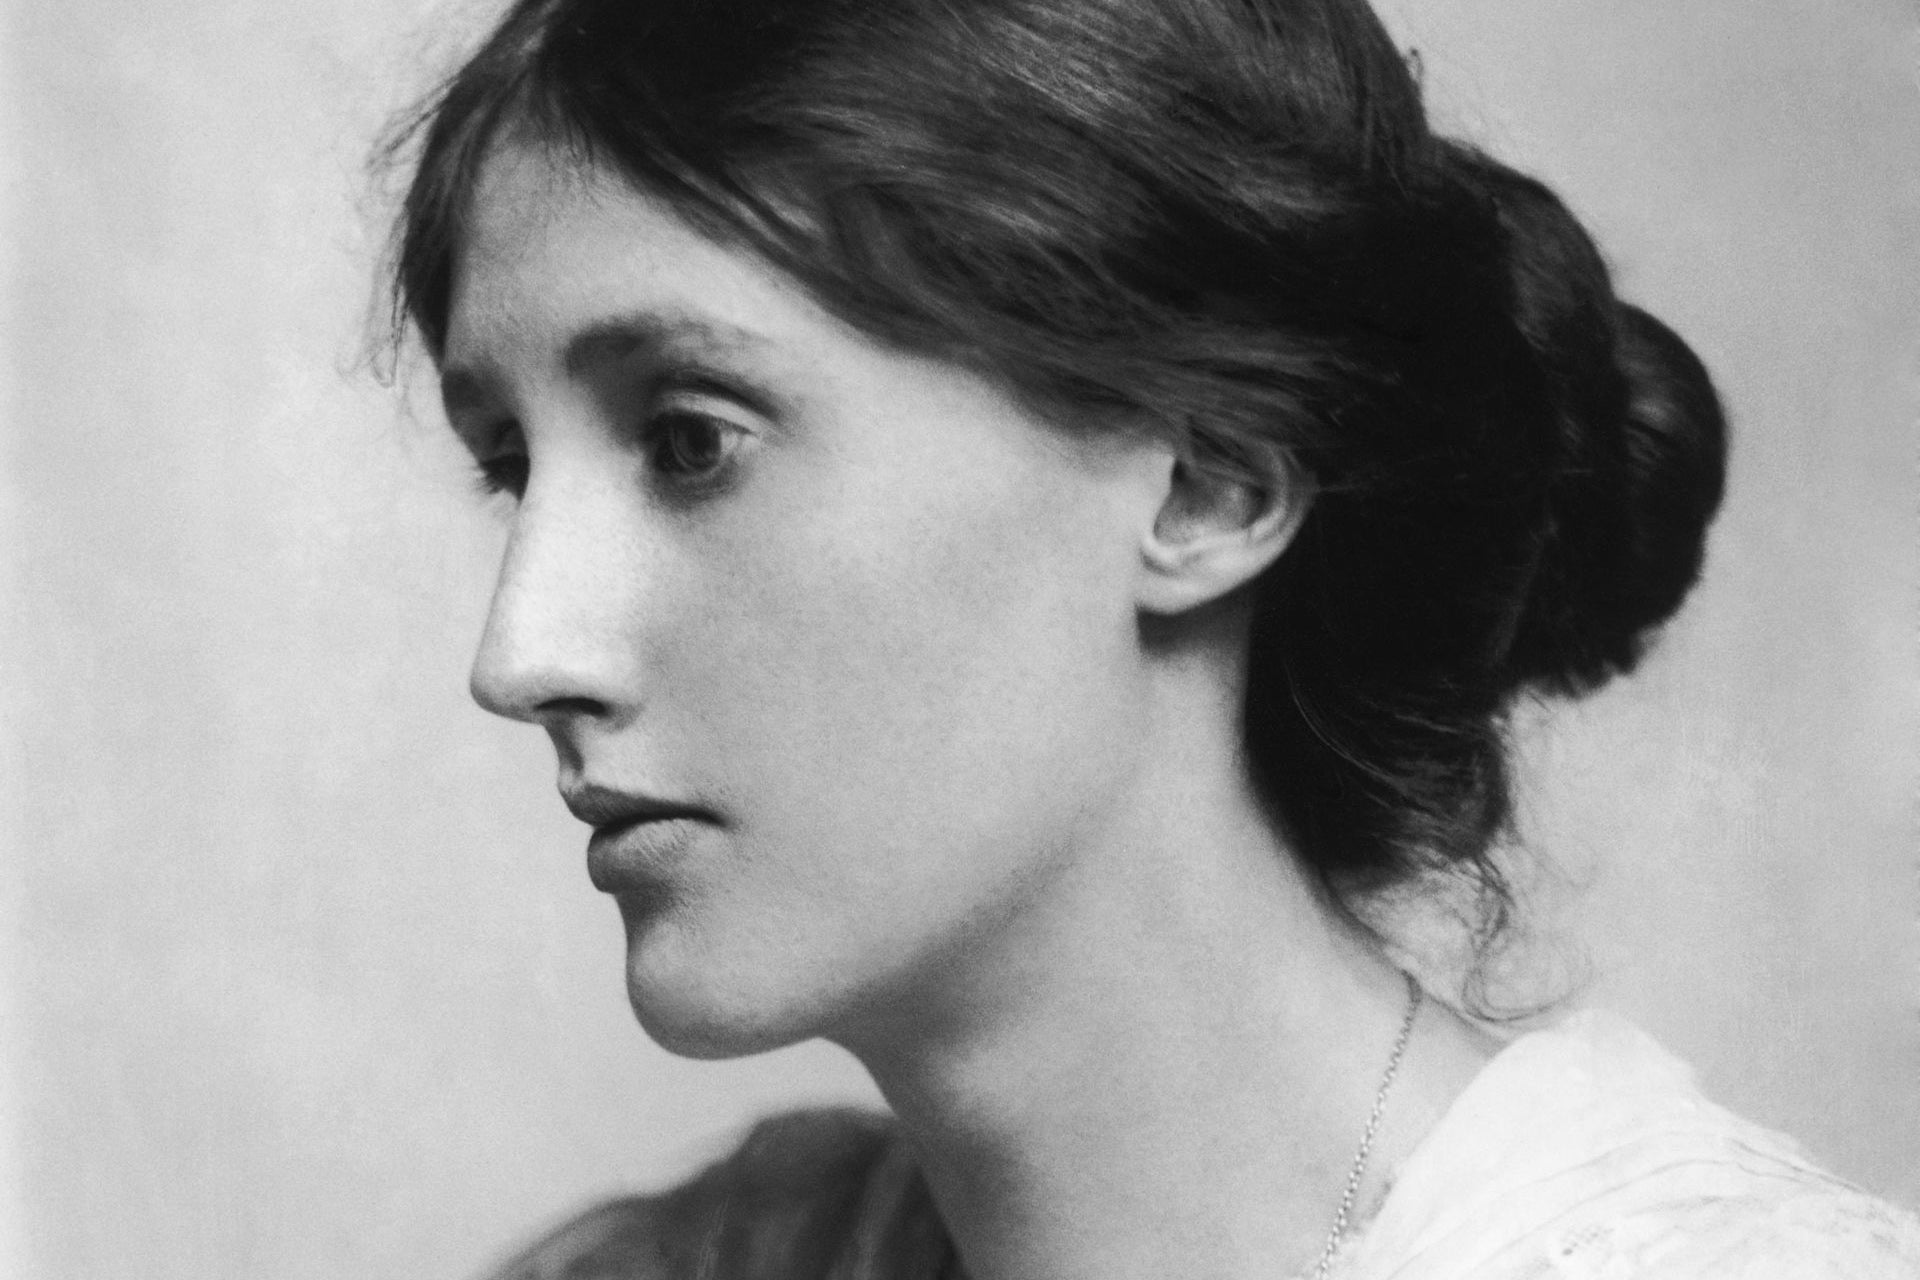 """[Virginia] Woolf was raised by people who had lost their faith and were trying to construct life practices and ethics that could sustain them and help them interpret the world,"" says Harvard Divinity School Professor Stephanie Paulsell."